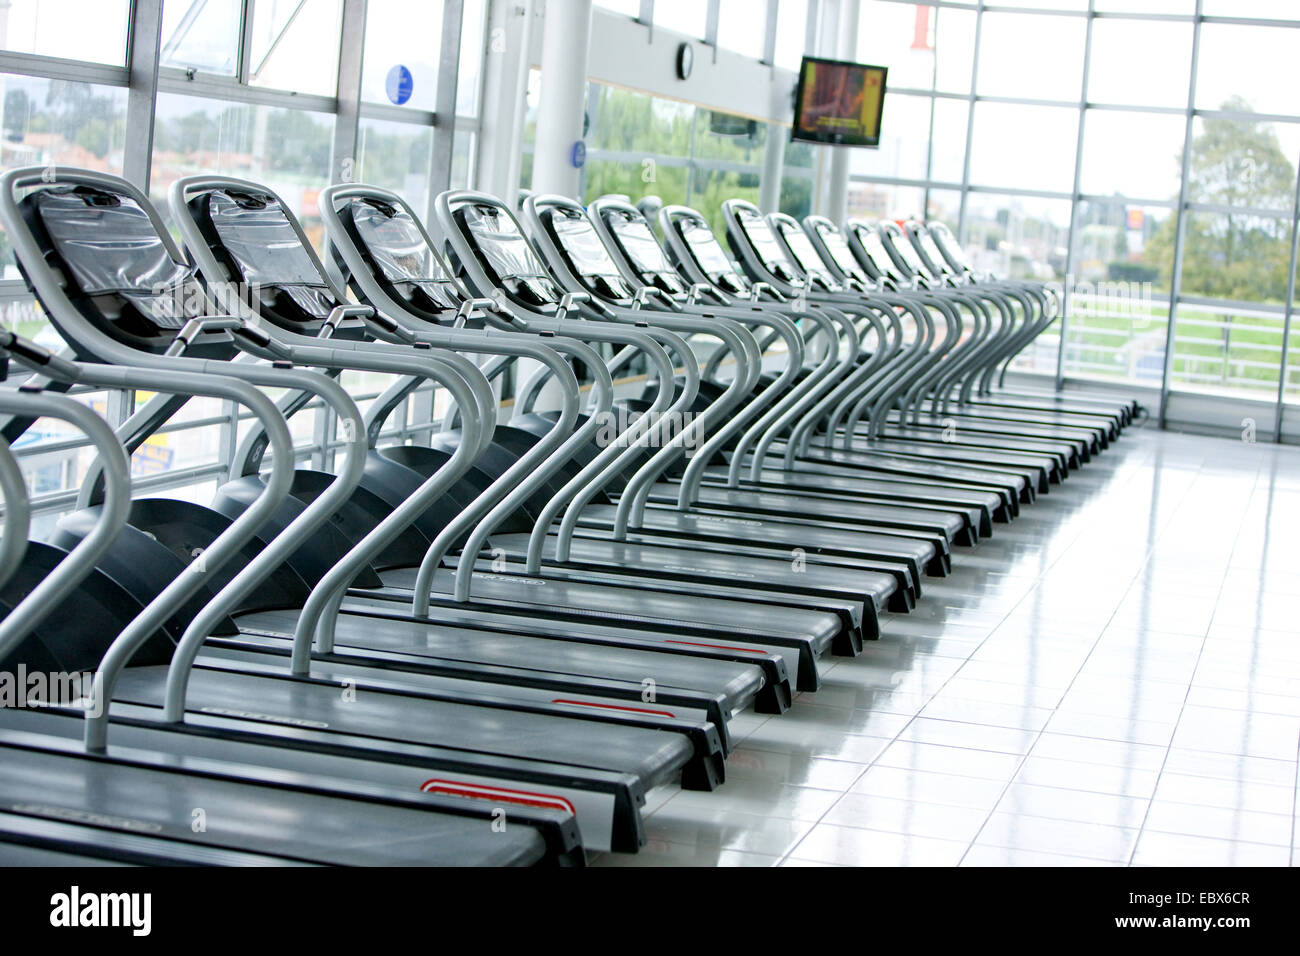 Series of treadmills in a row in the gym - Stock Image